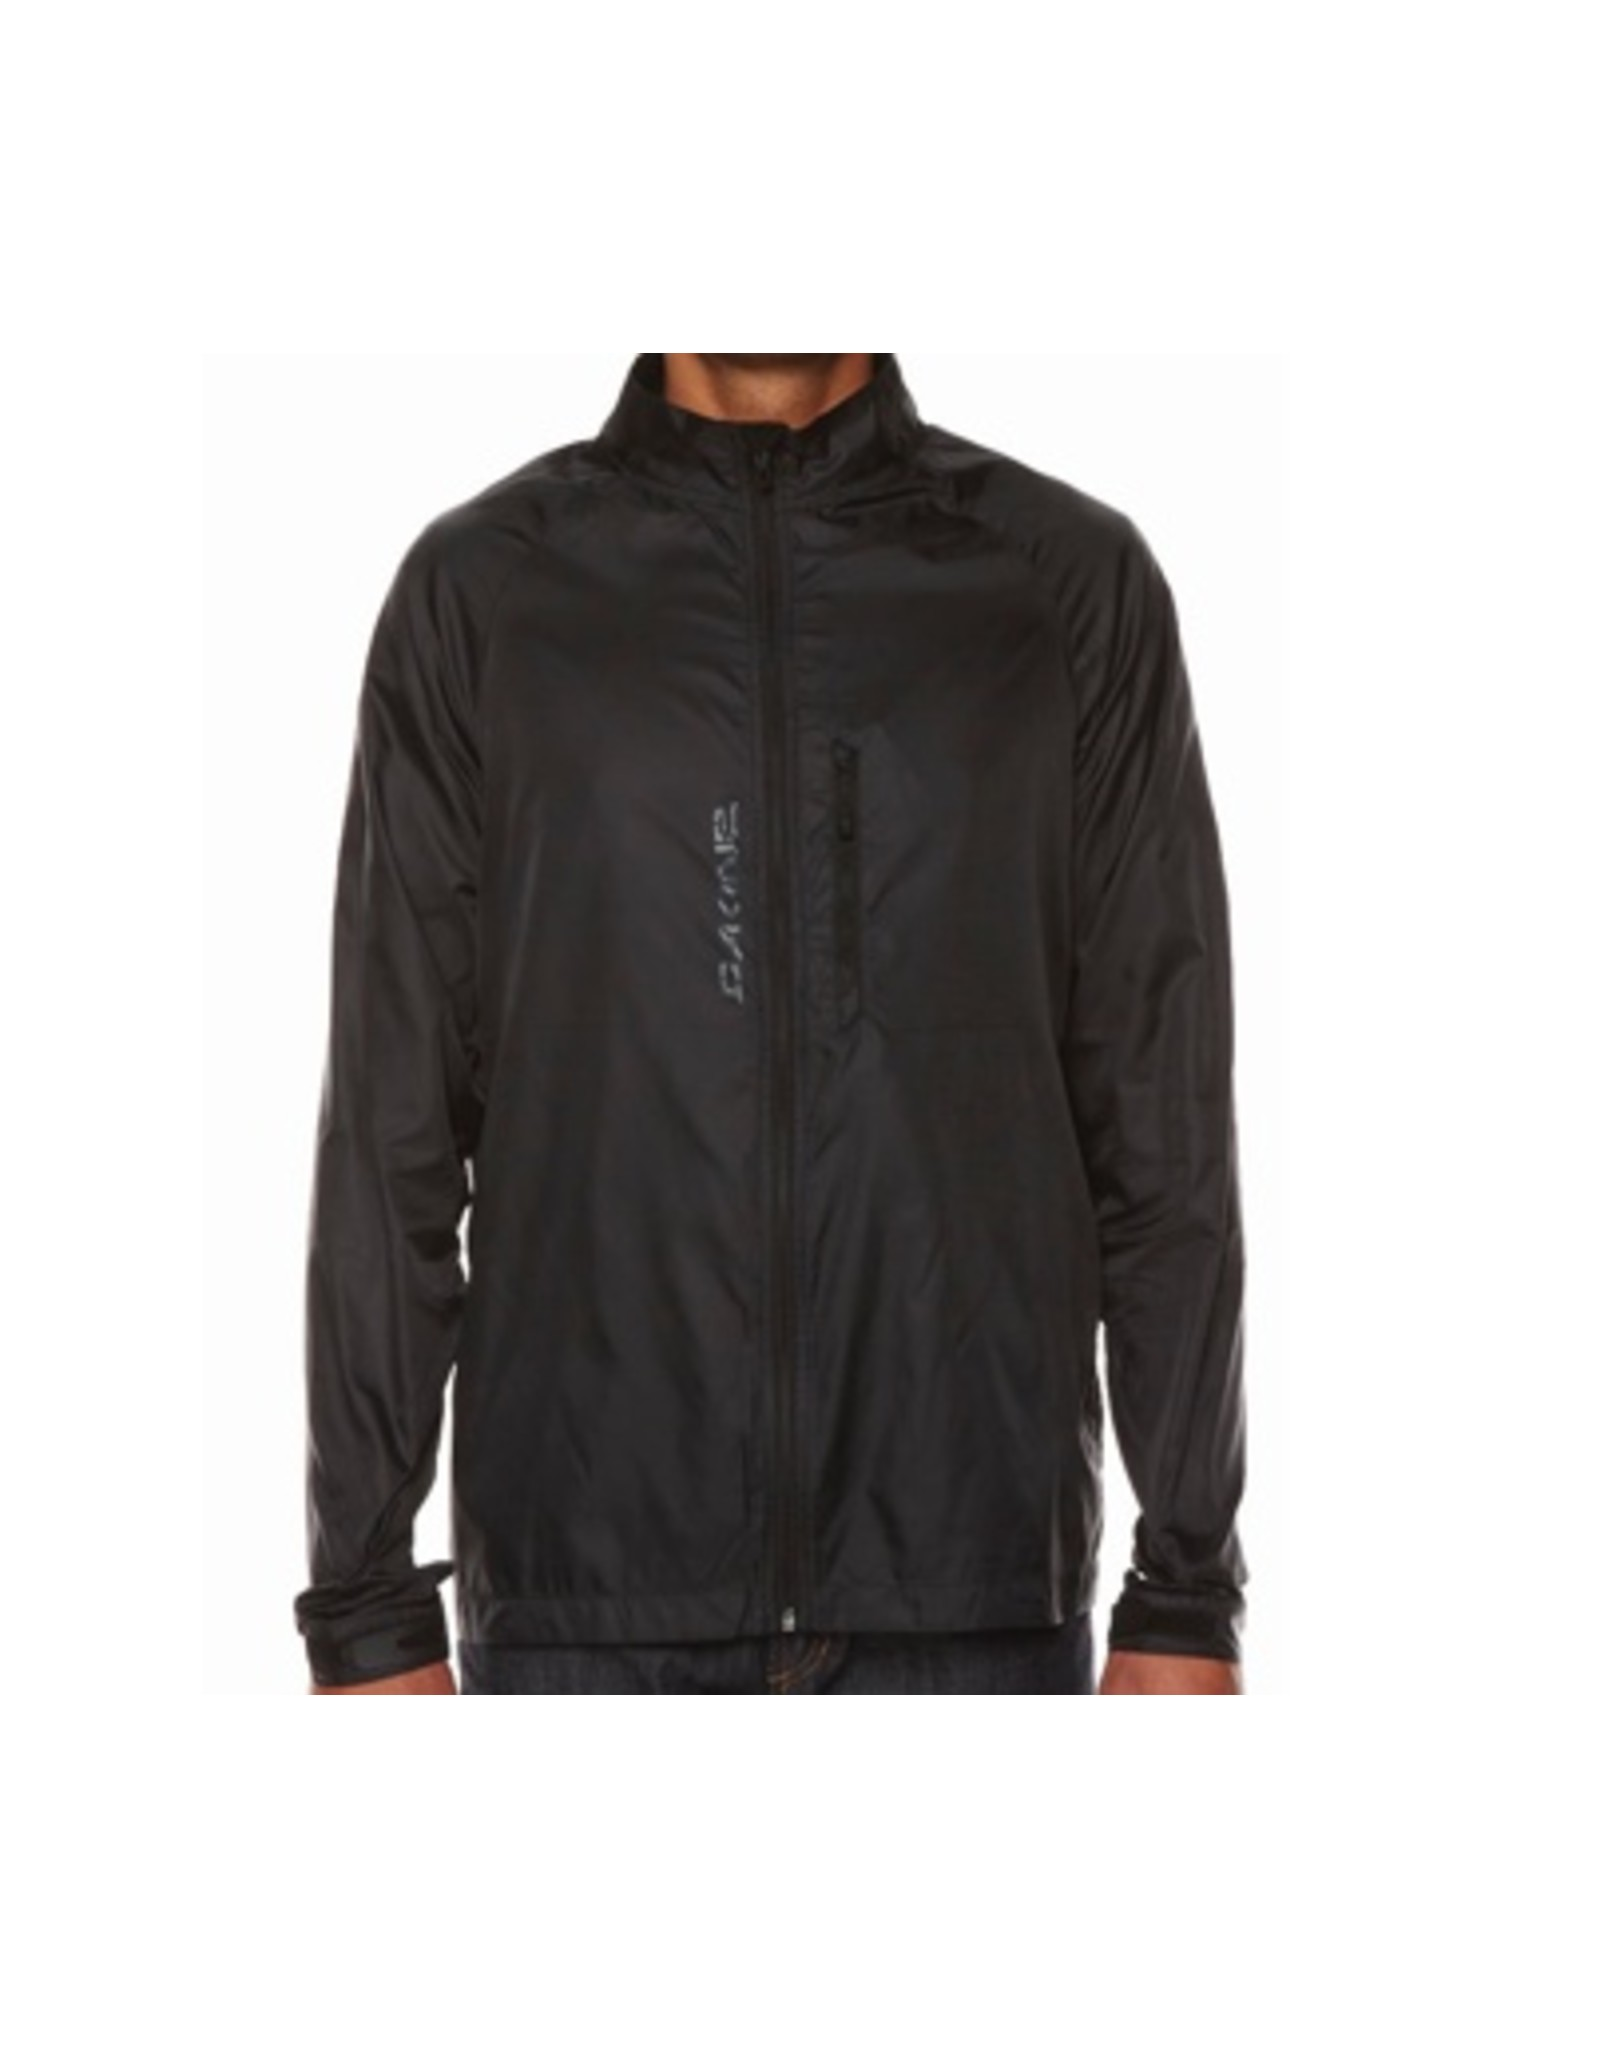 IMPERMEABLE PORTATIVE - DAKINE - BREAKER JACKET NOIR MEDIUM